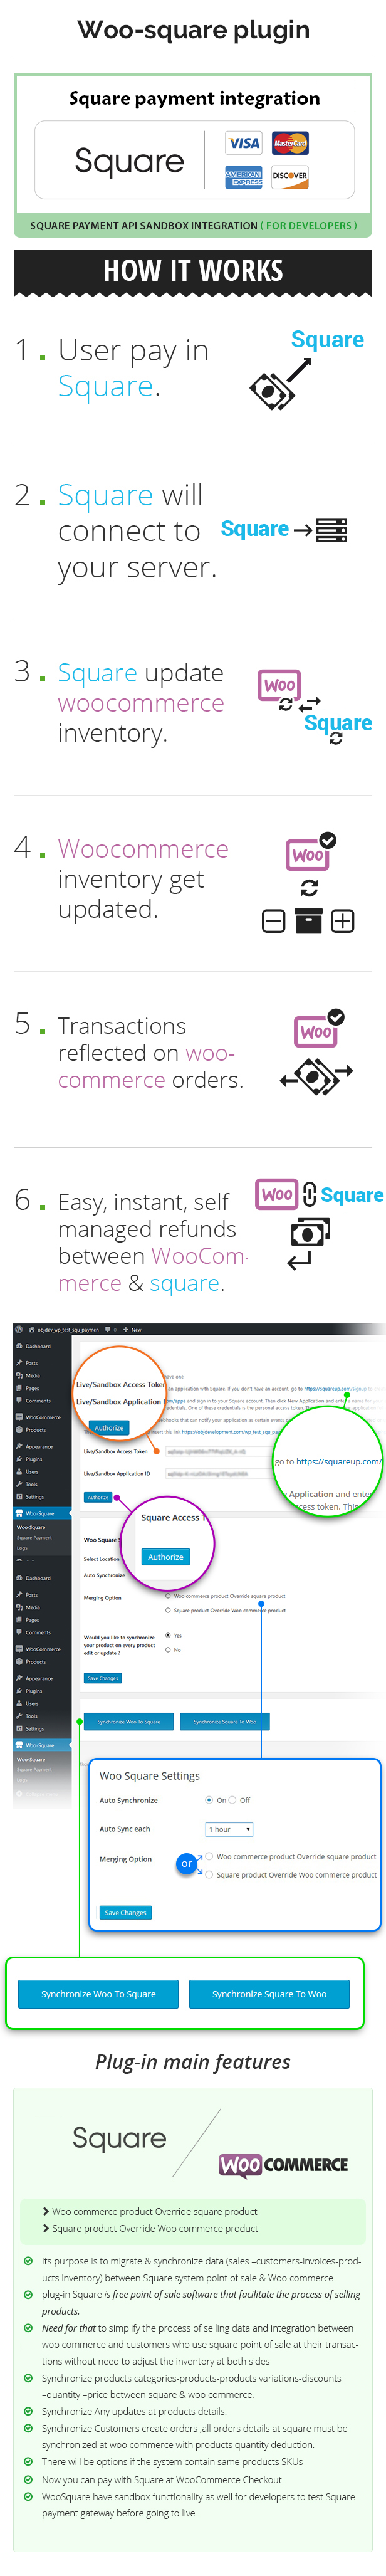 WooSquare Pro - Square For WooCommerce - 8